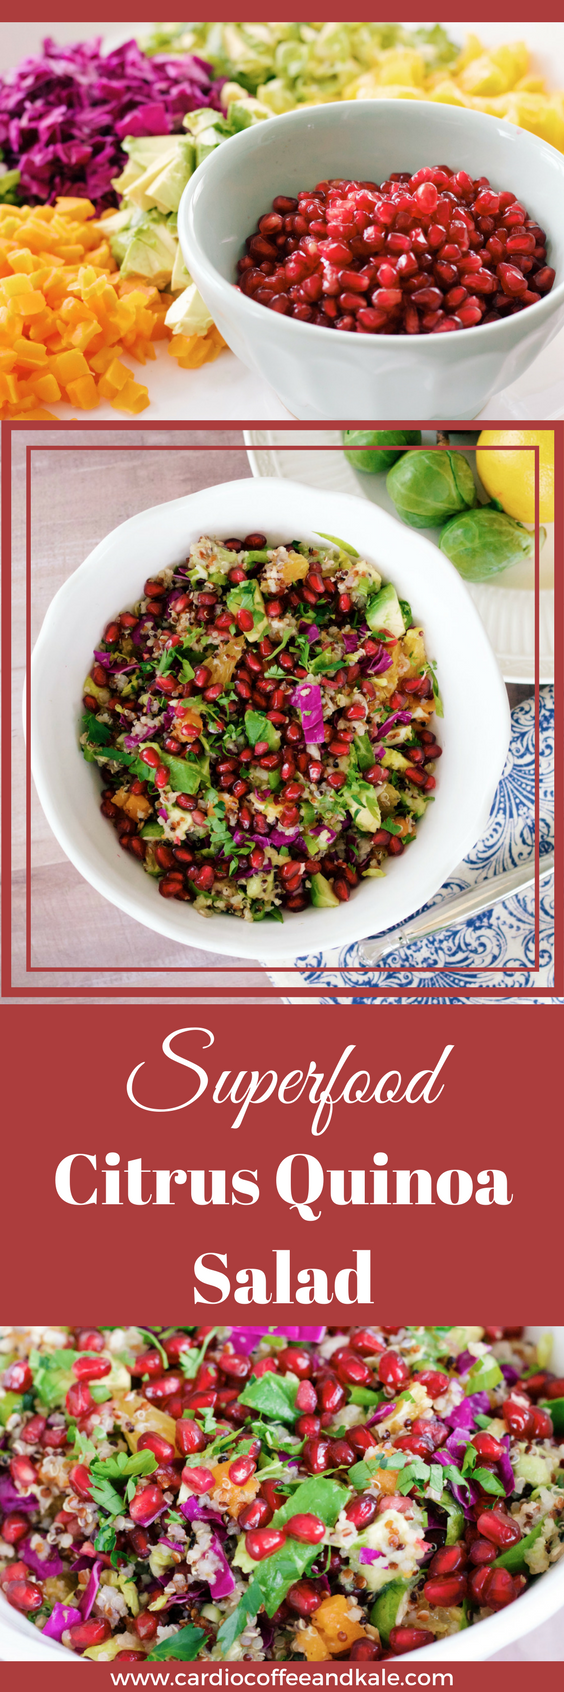 This salad is packed with superfoods and is one of my family's absolute favorites!  The superfoods are loaded with tons of nutrients, antioxidants, anti-inflammatory properties, and heart healthy fats. It's a flavor explosion!  It's a little savory, a little sweet, and even has some crunch...it's seriously delicious! WWW.CARDIOCOFFEEANDKALE.COM